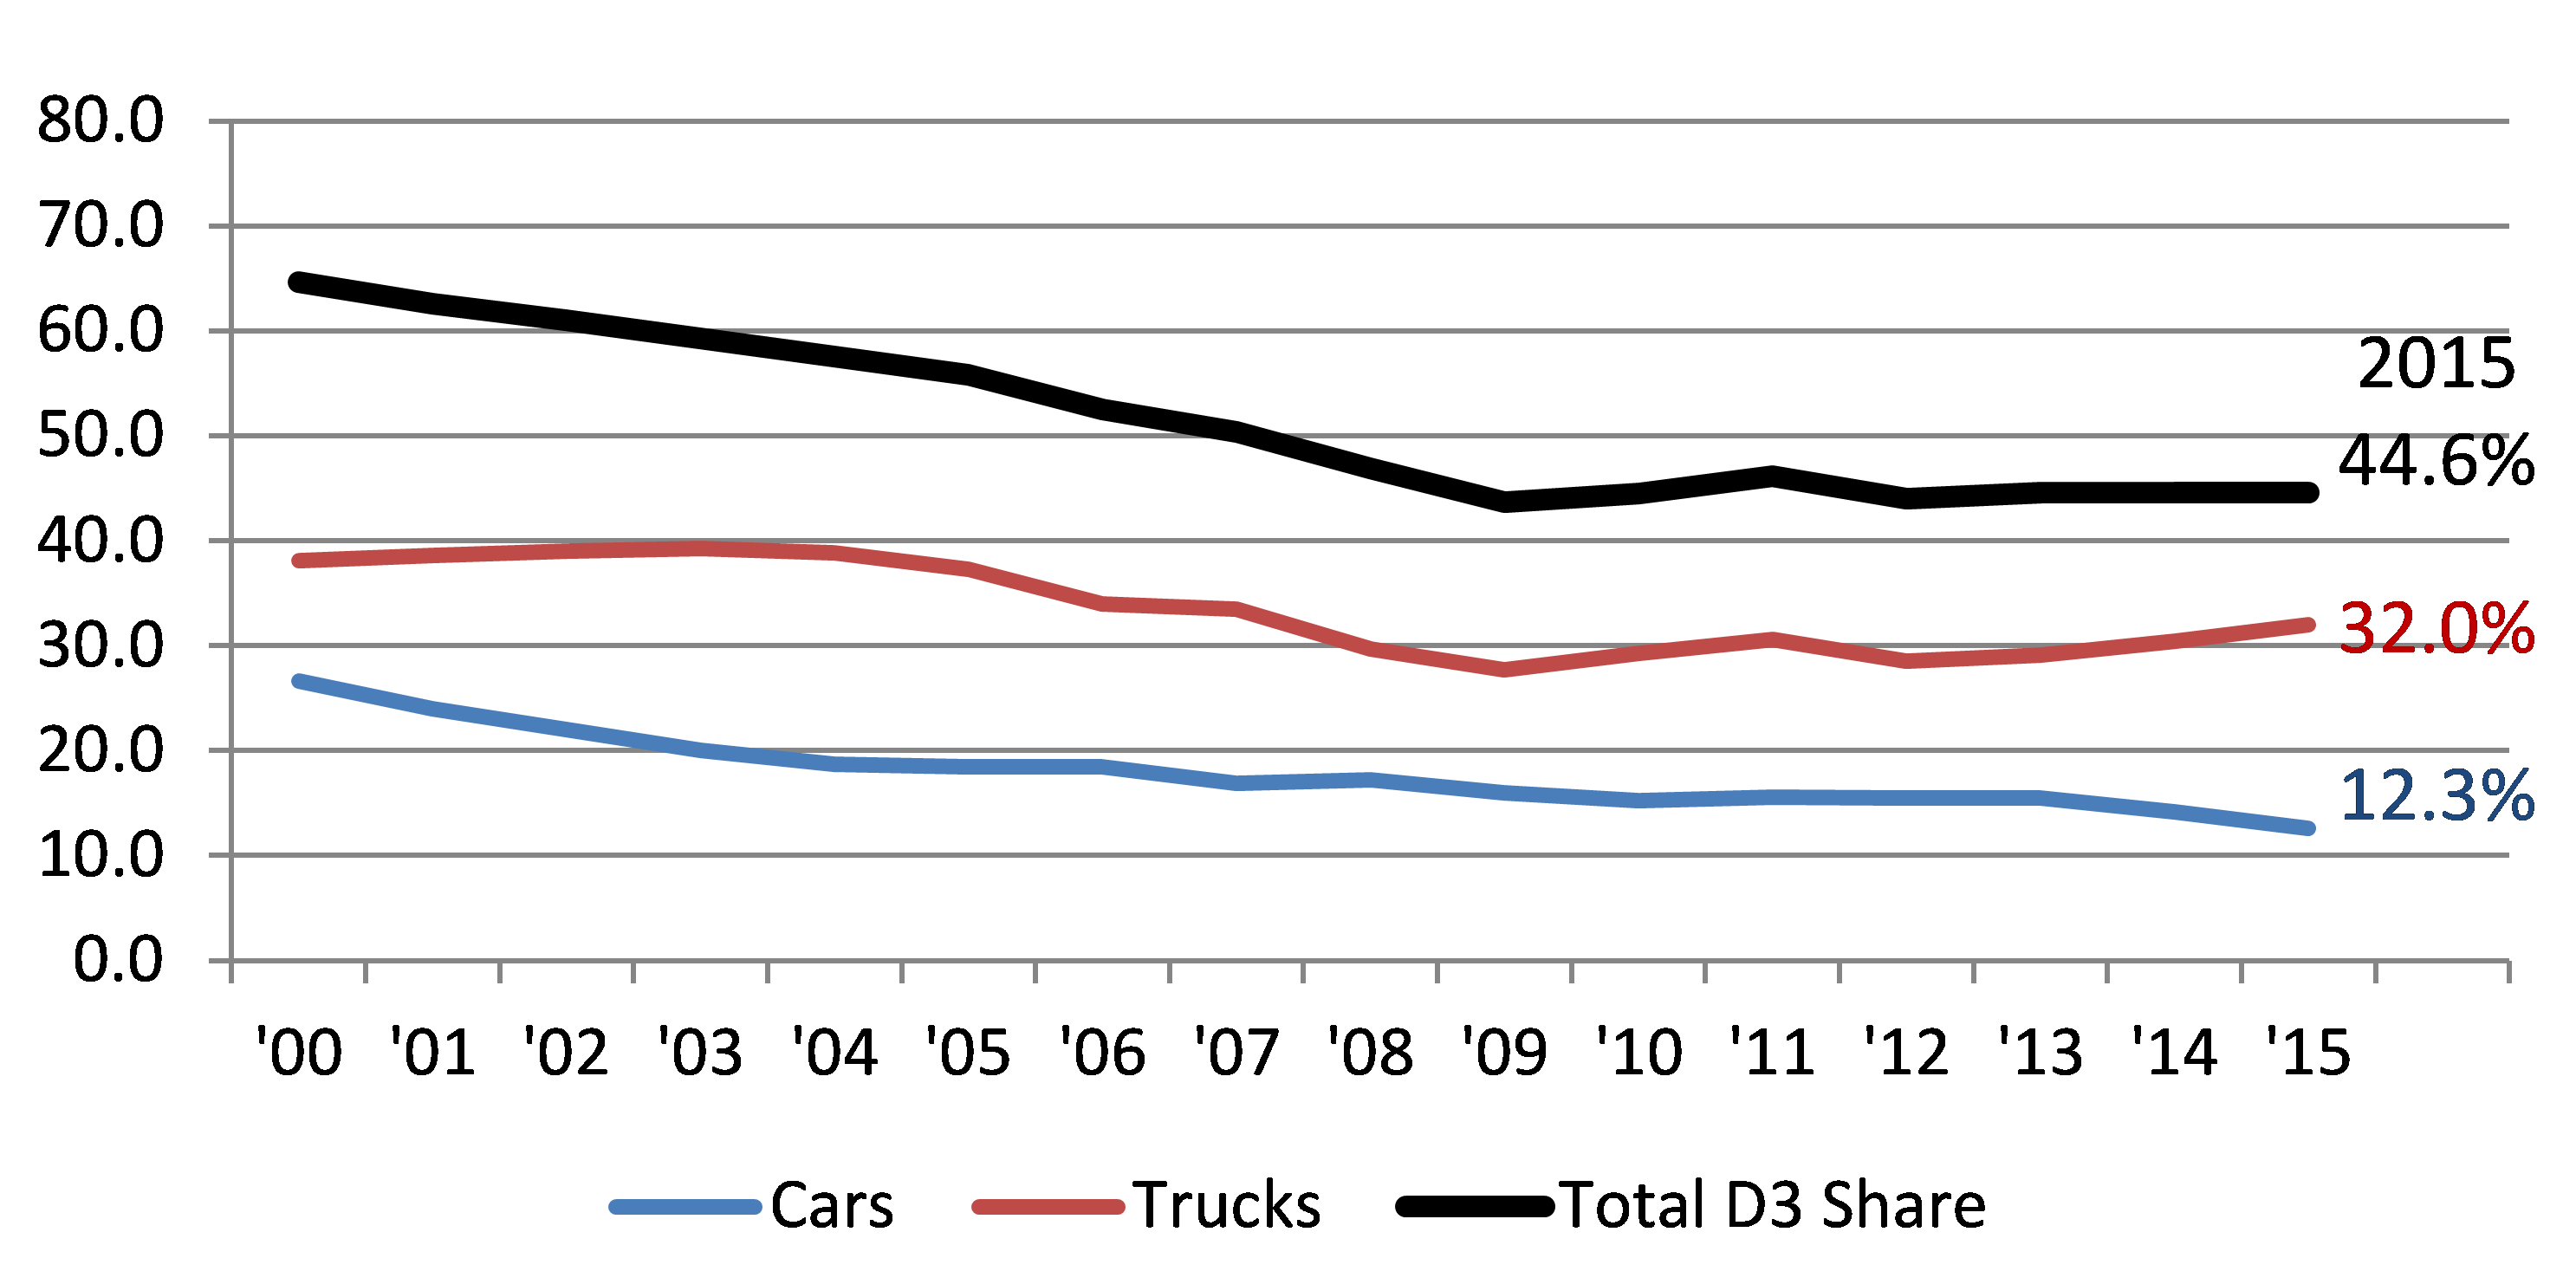 D3 market share by vehicle type